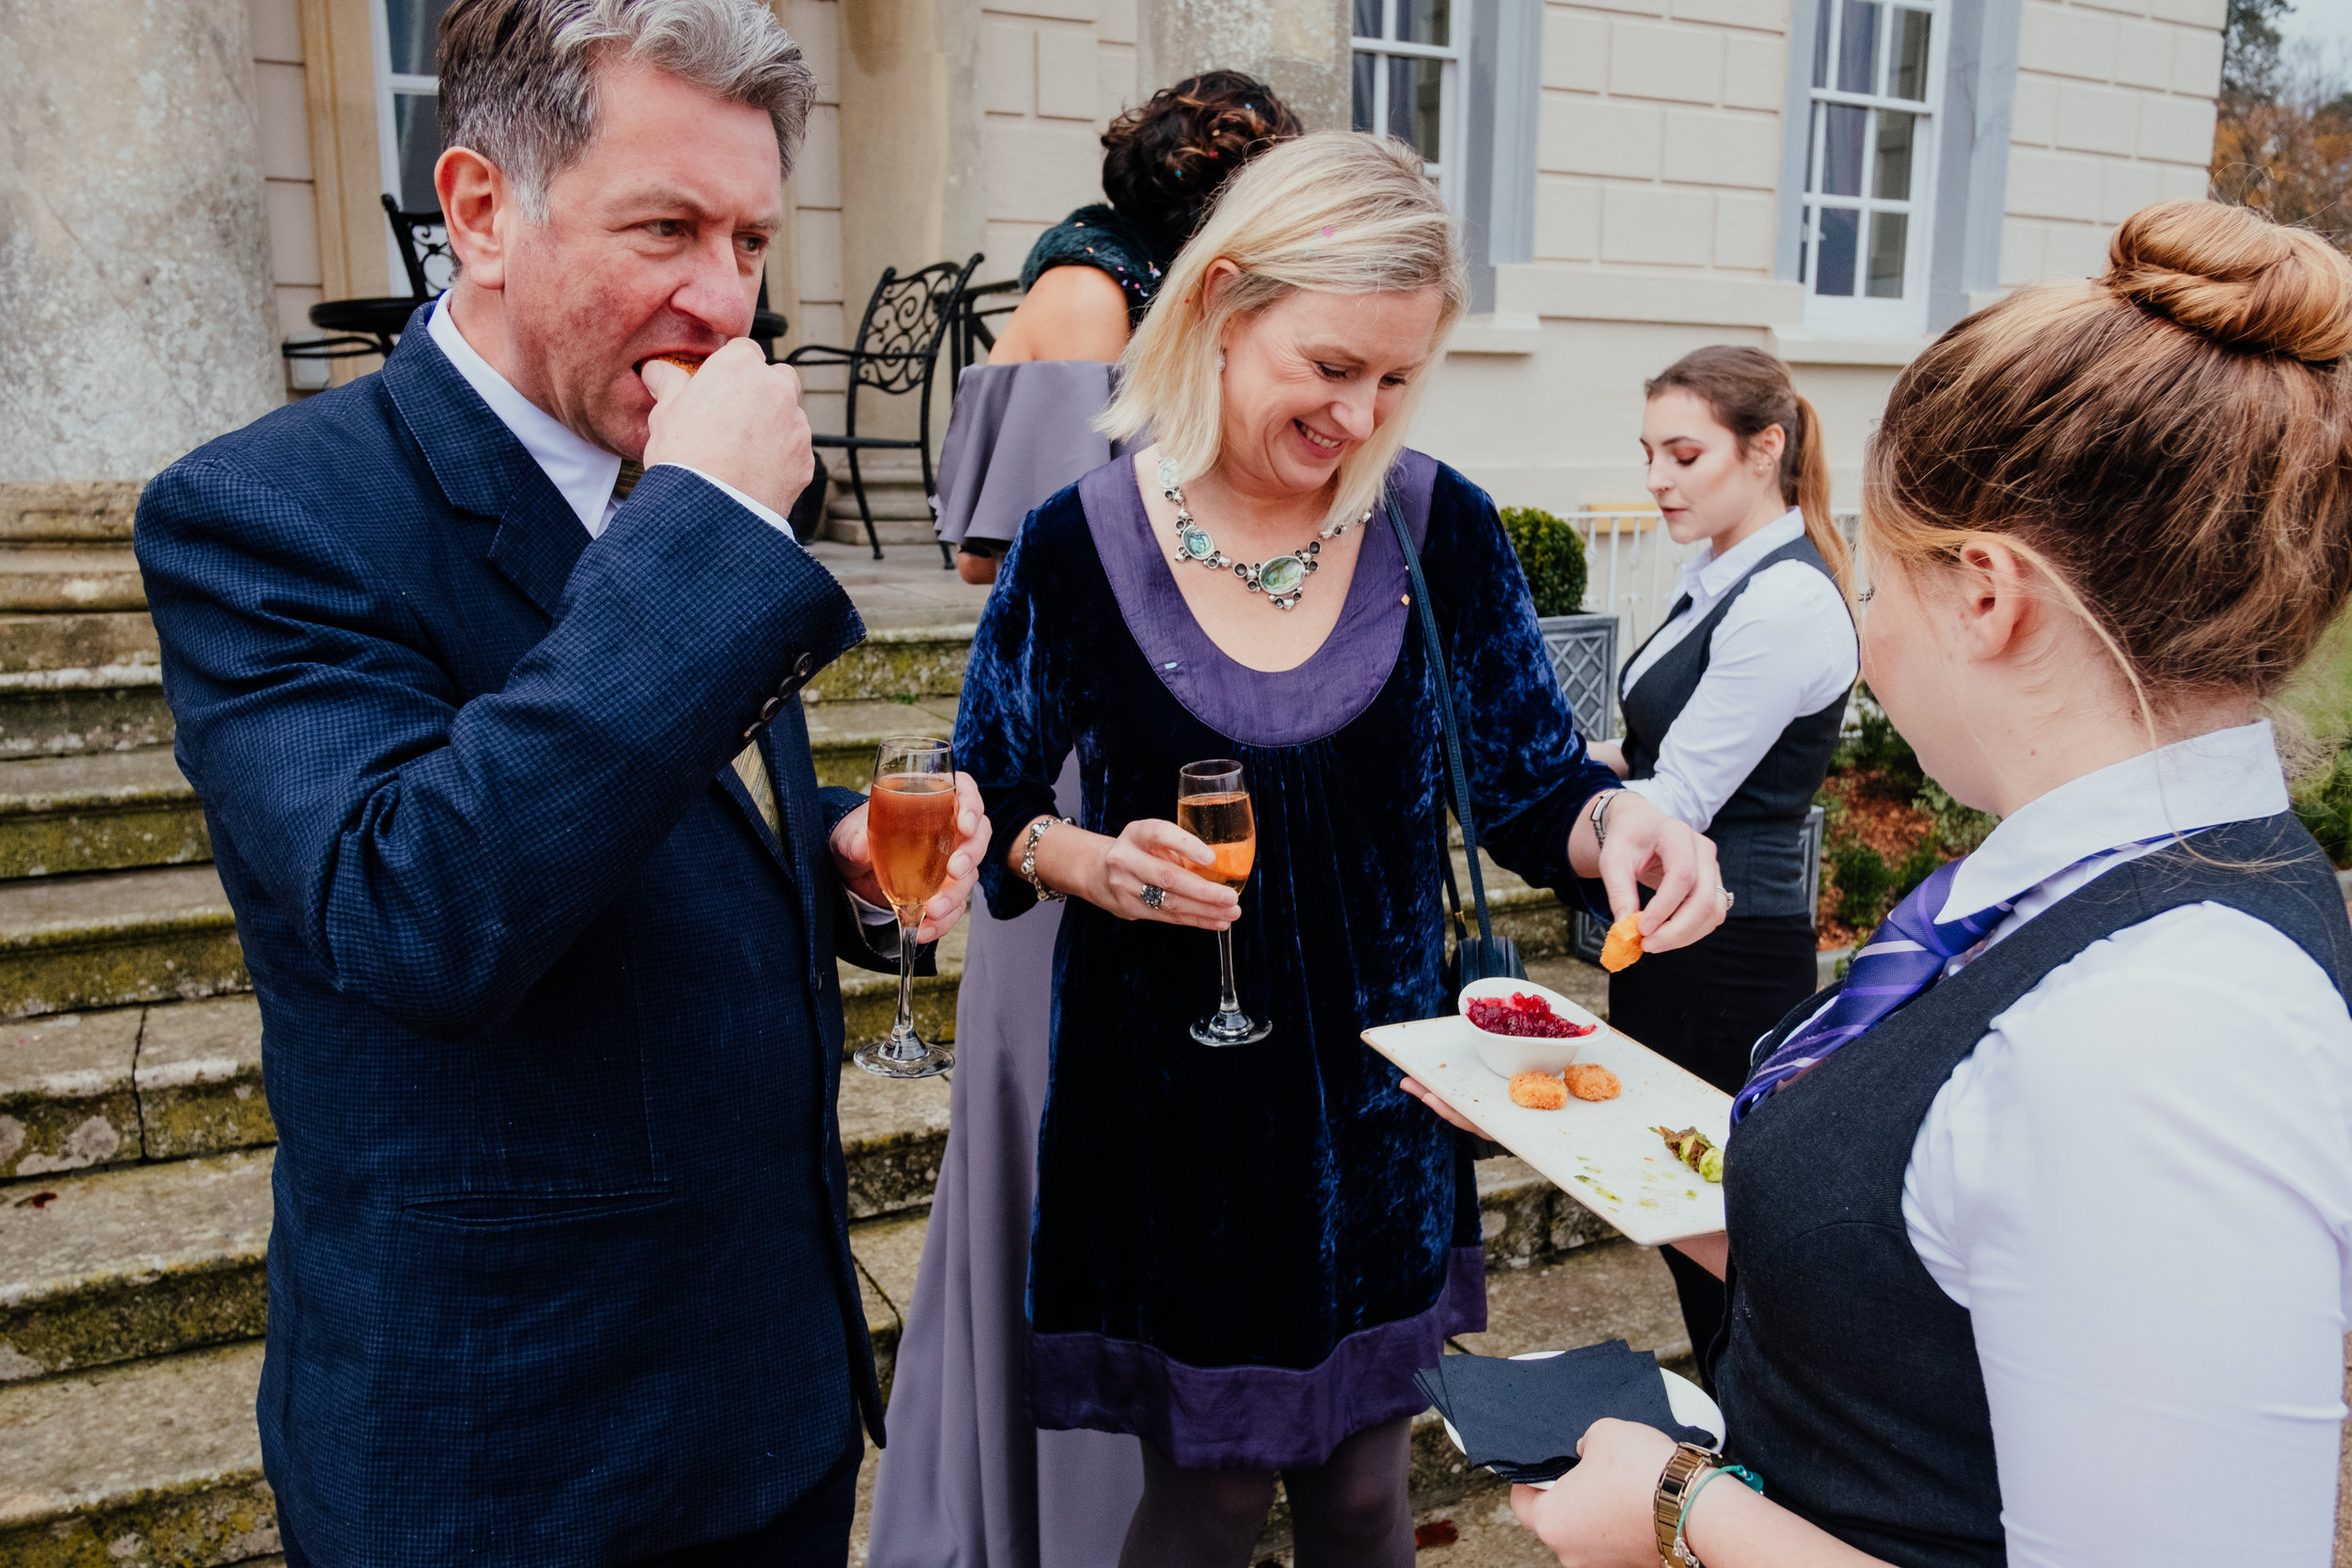 Buxted House Hotel wedding guests eating canapés outside